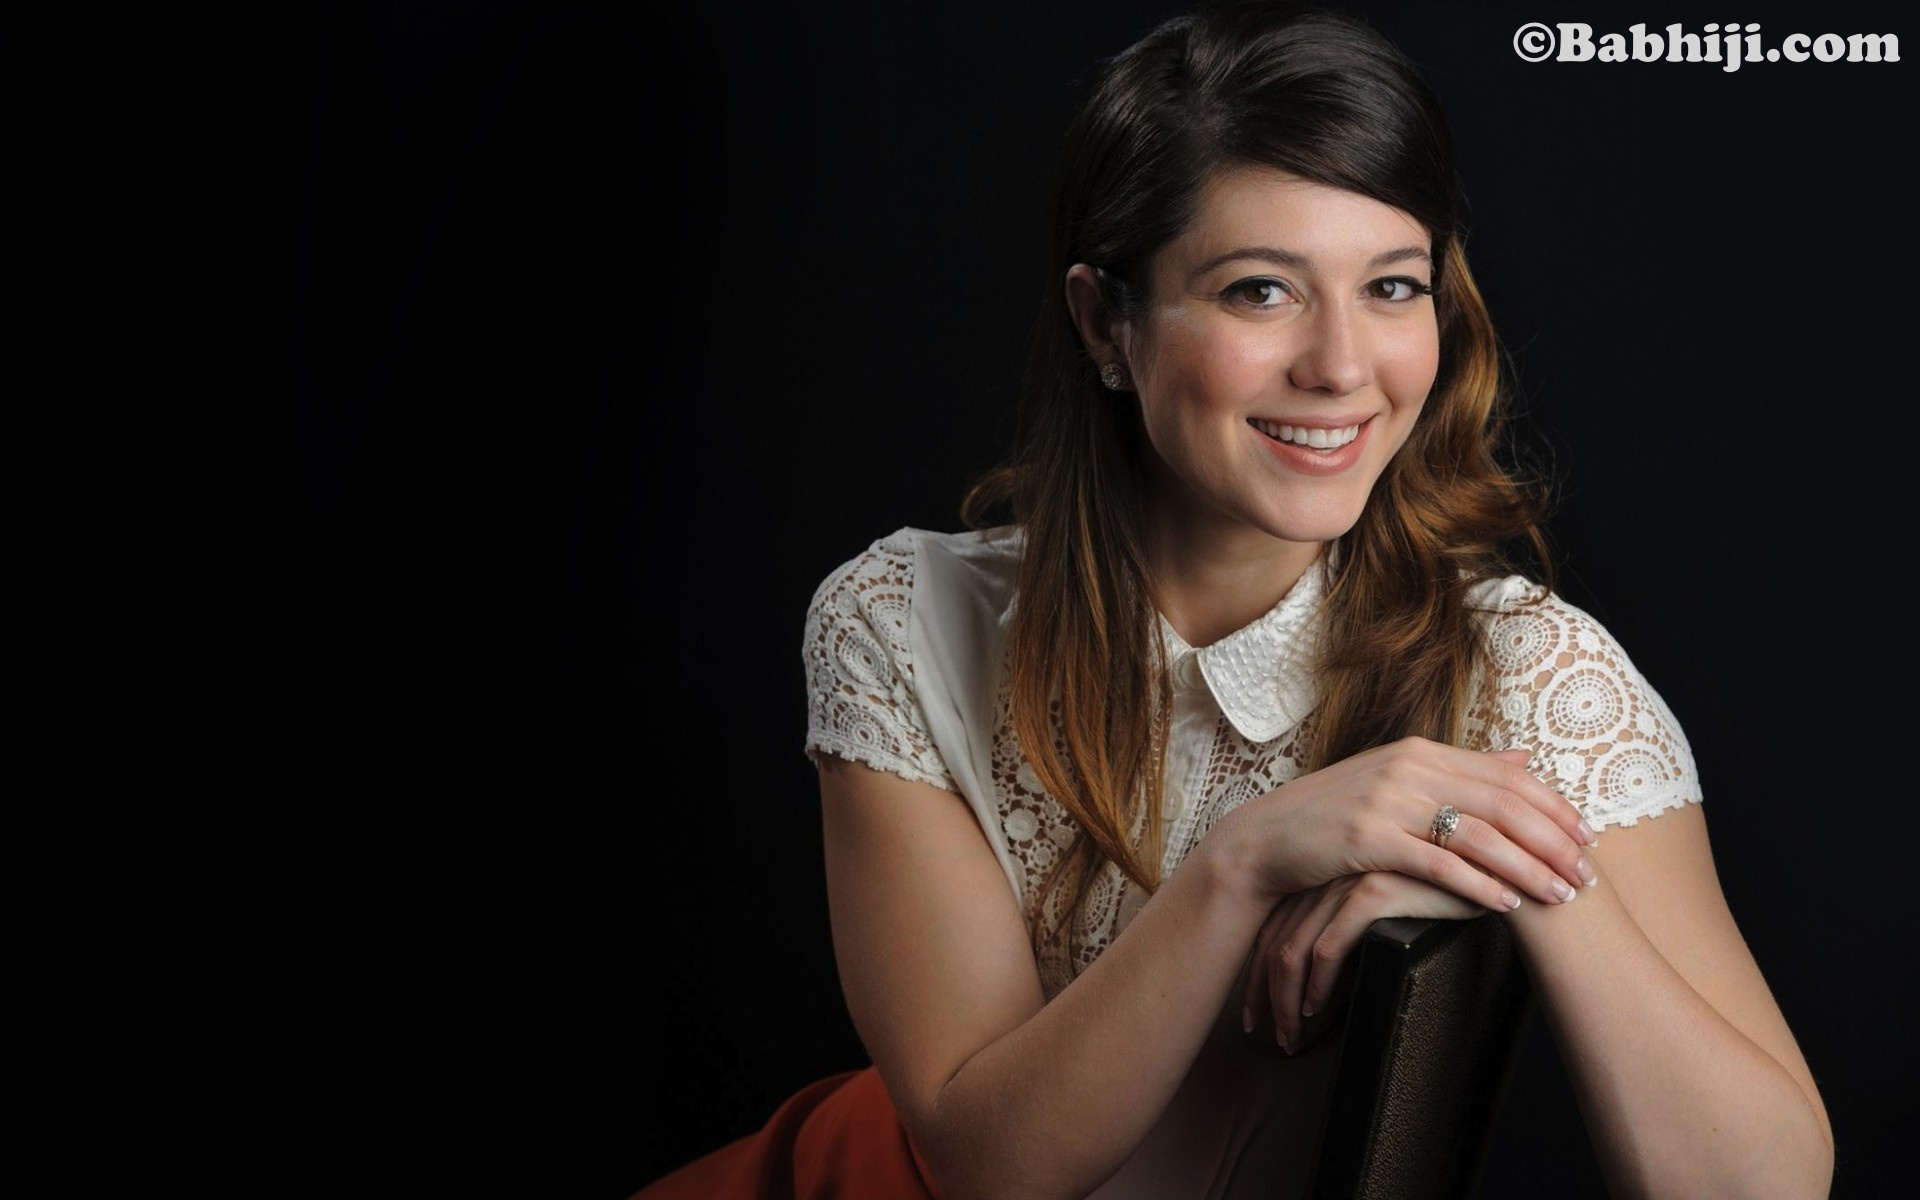 Mary Elizabeth Winstead, Mary Elizabeth Winstead Wallpaper, Mary Elizabeth Winstead Photo, Mary Elizabeth Winstead Images